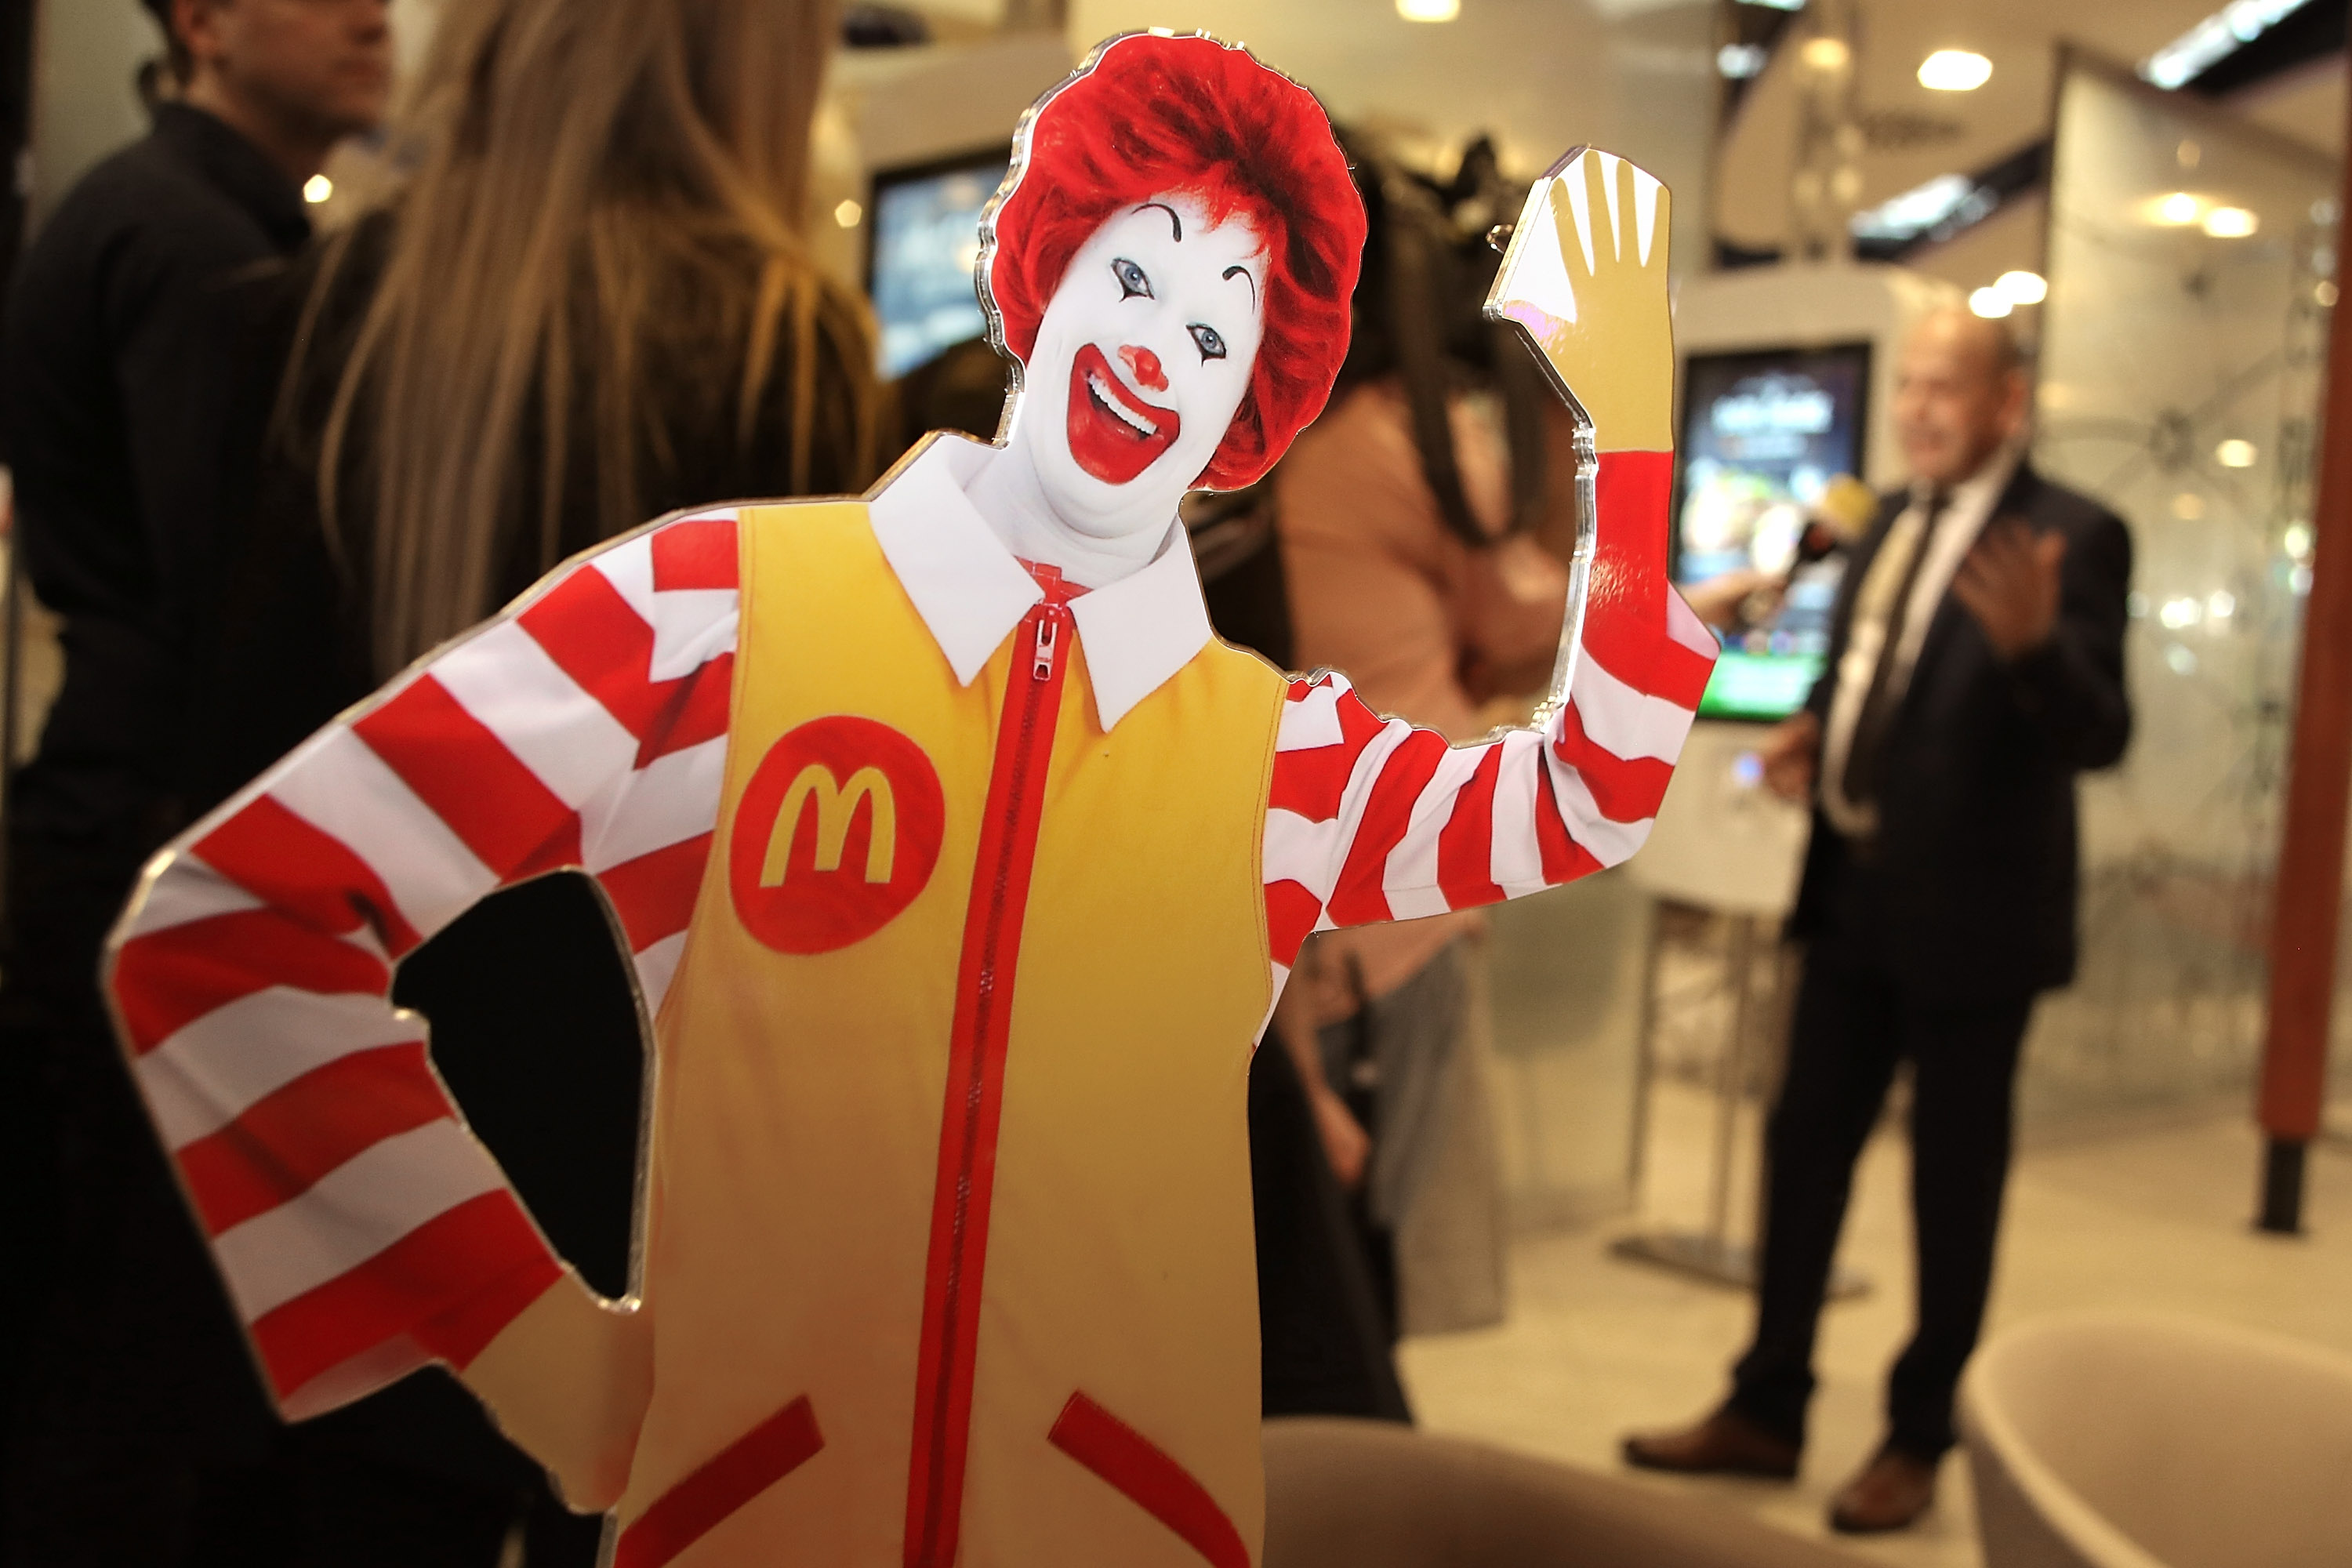 Nurses in Texas Are Allegedly Quitting, Finding Better Pay at McDonald's